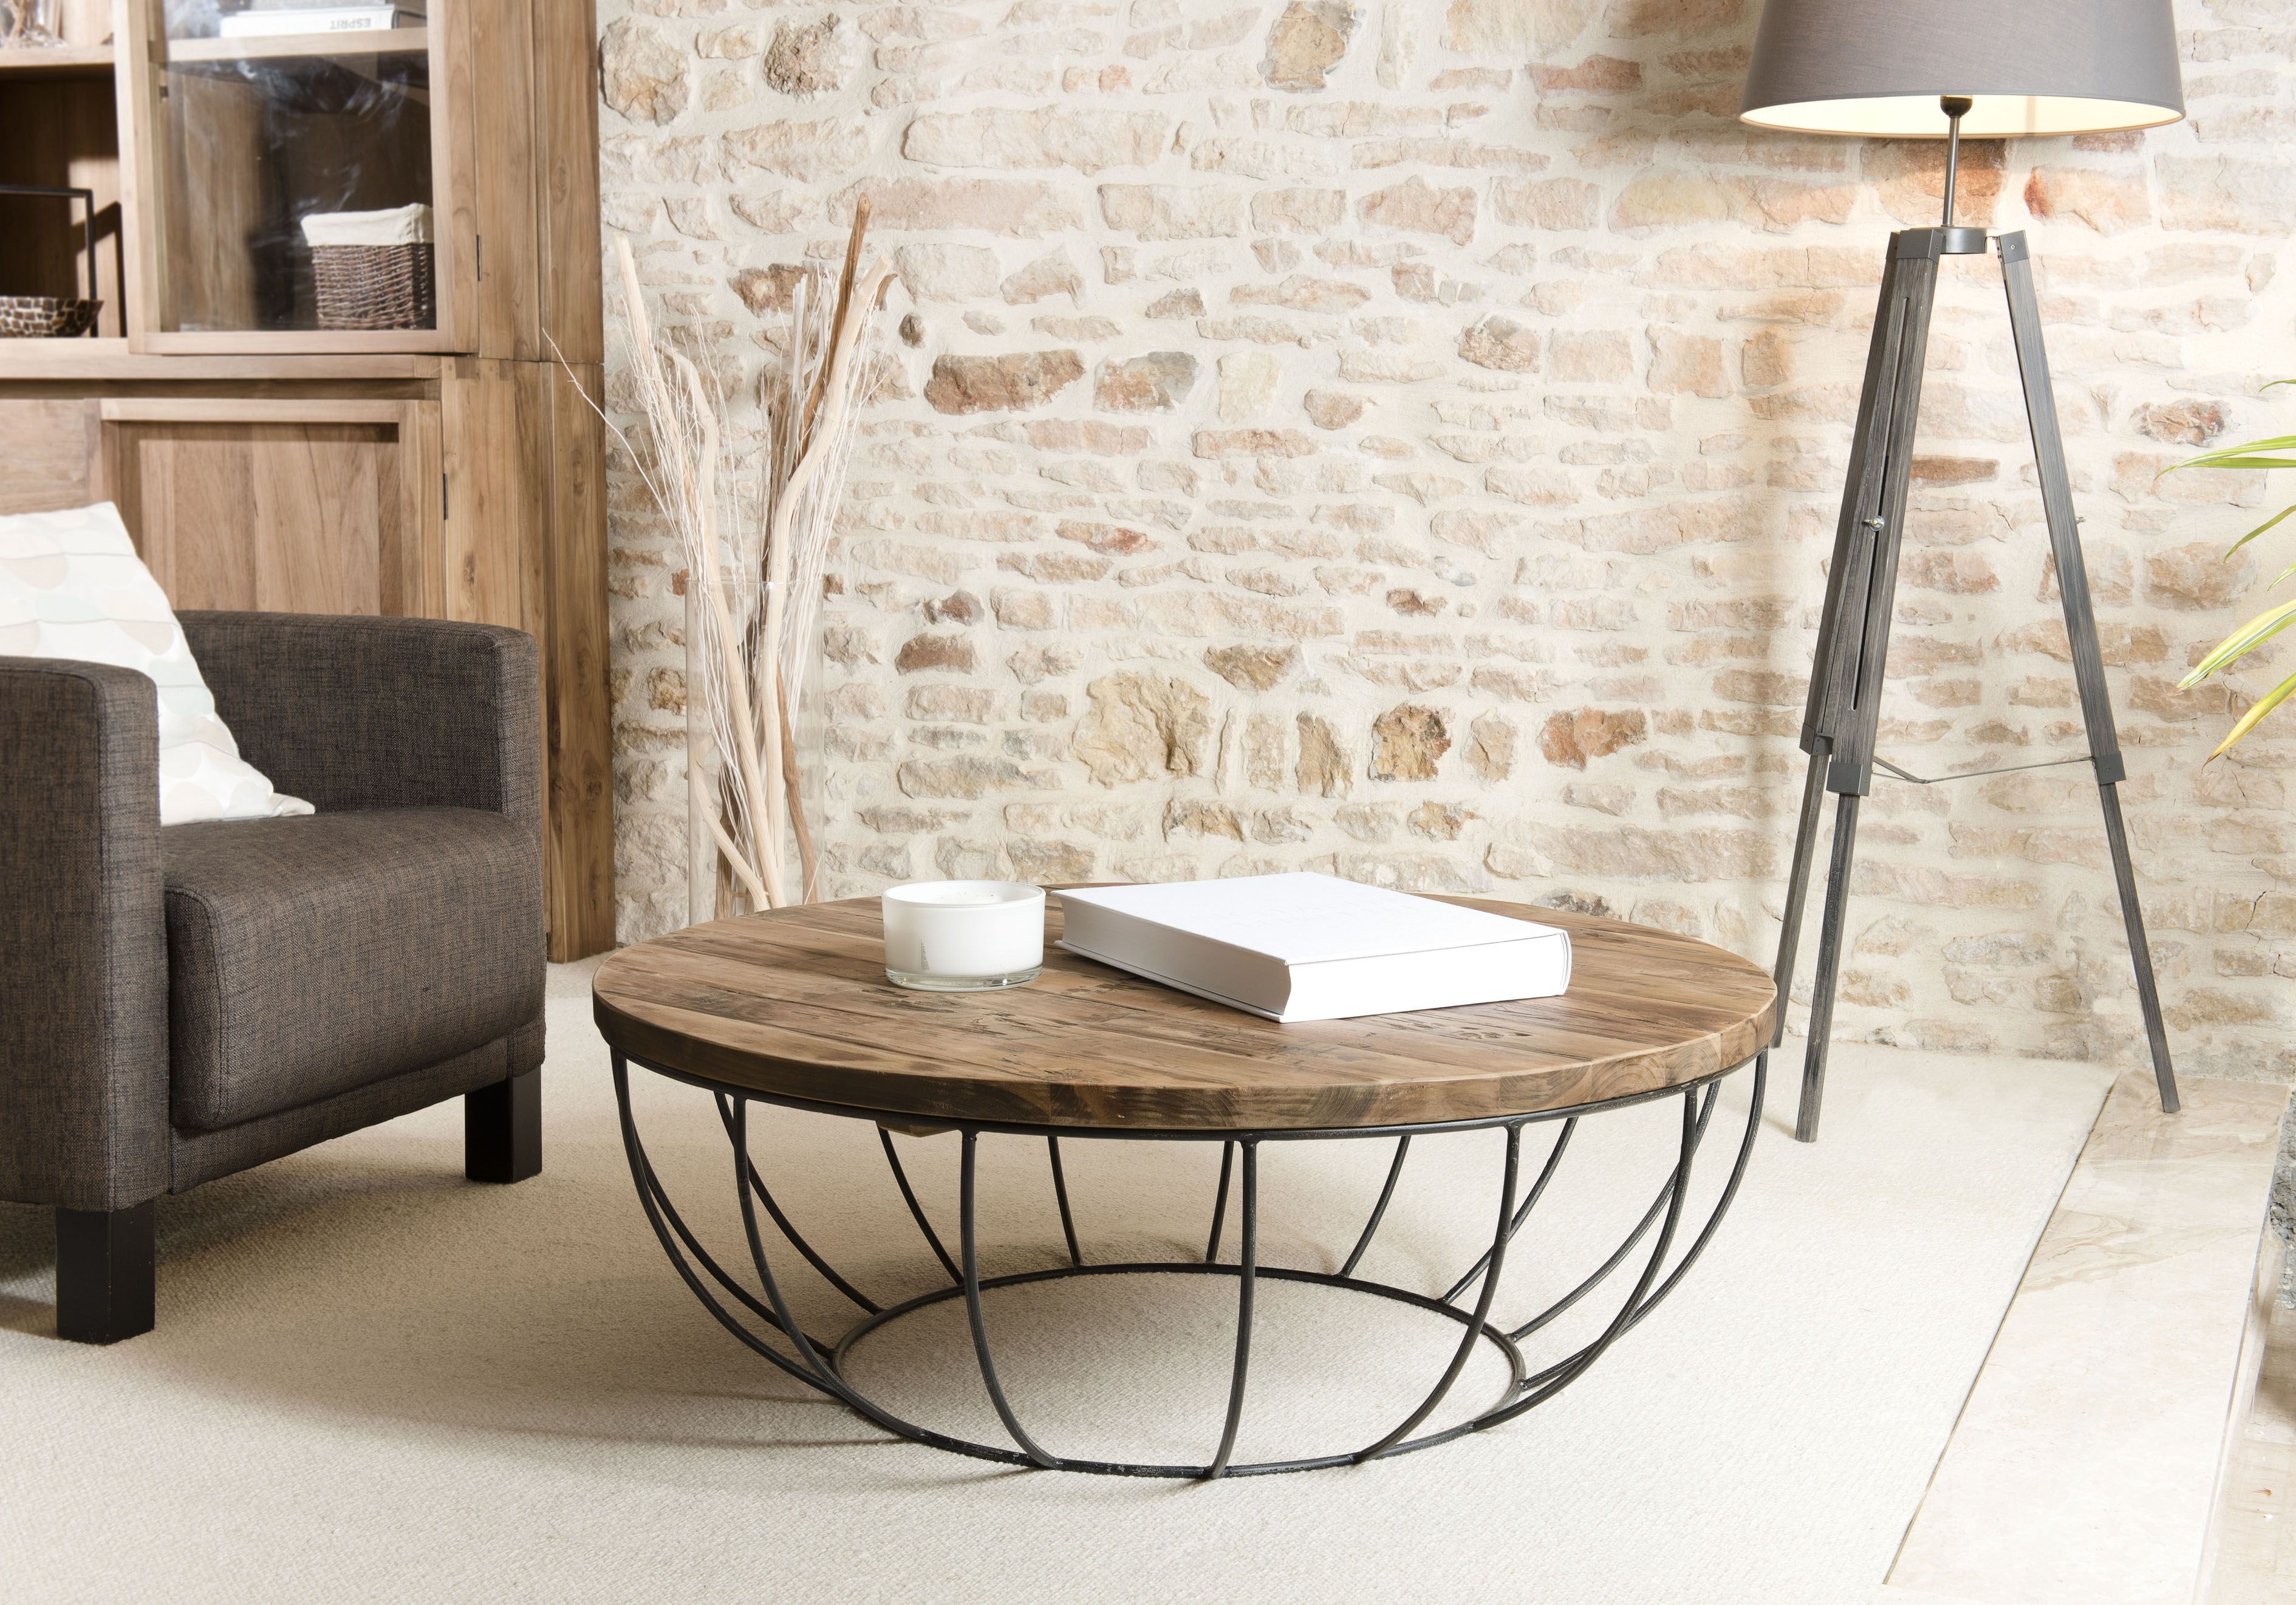 Table Basse Ronde Teck Recycle Structure Filaire Noire 1 Plateau Swing Infos Et Dimensions Longueur 100 Cm L Table Basse Table Basse Ronde Table De Salon